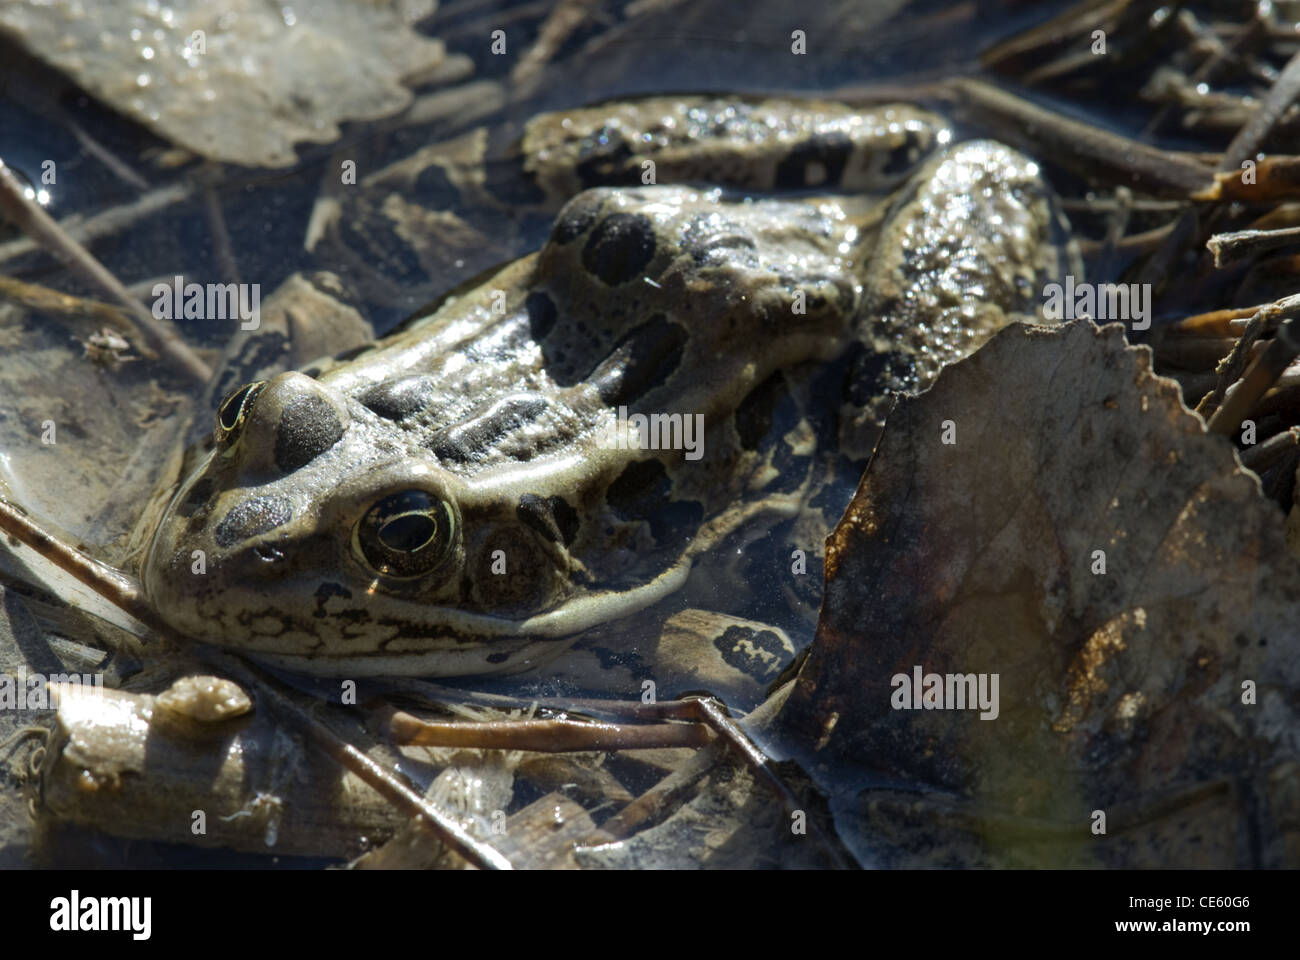 Northern Leopard Frog, (Lithobates pipiens), Cedro Creek, Sandia Mountains, Bernalillio county, New Mexico, USA. Stock Photo